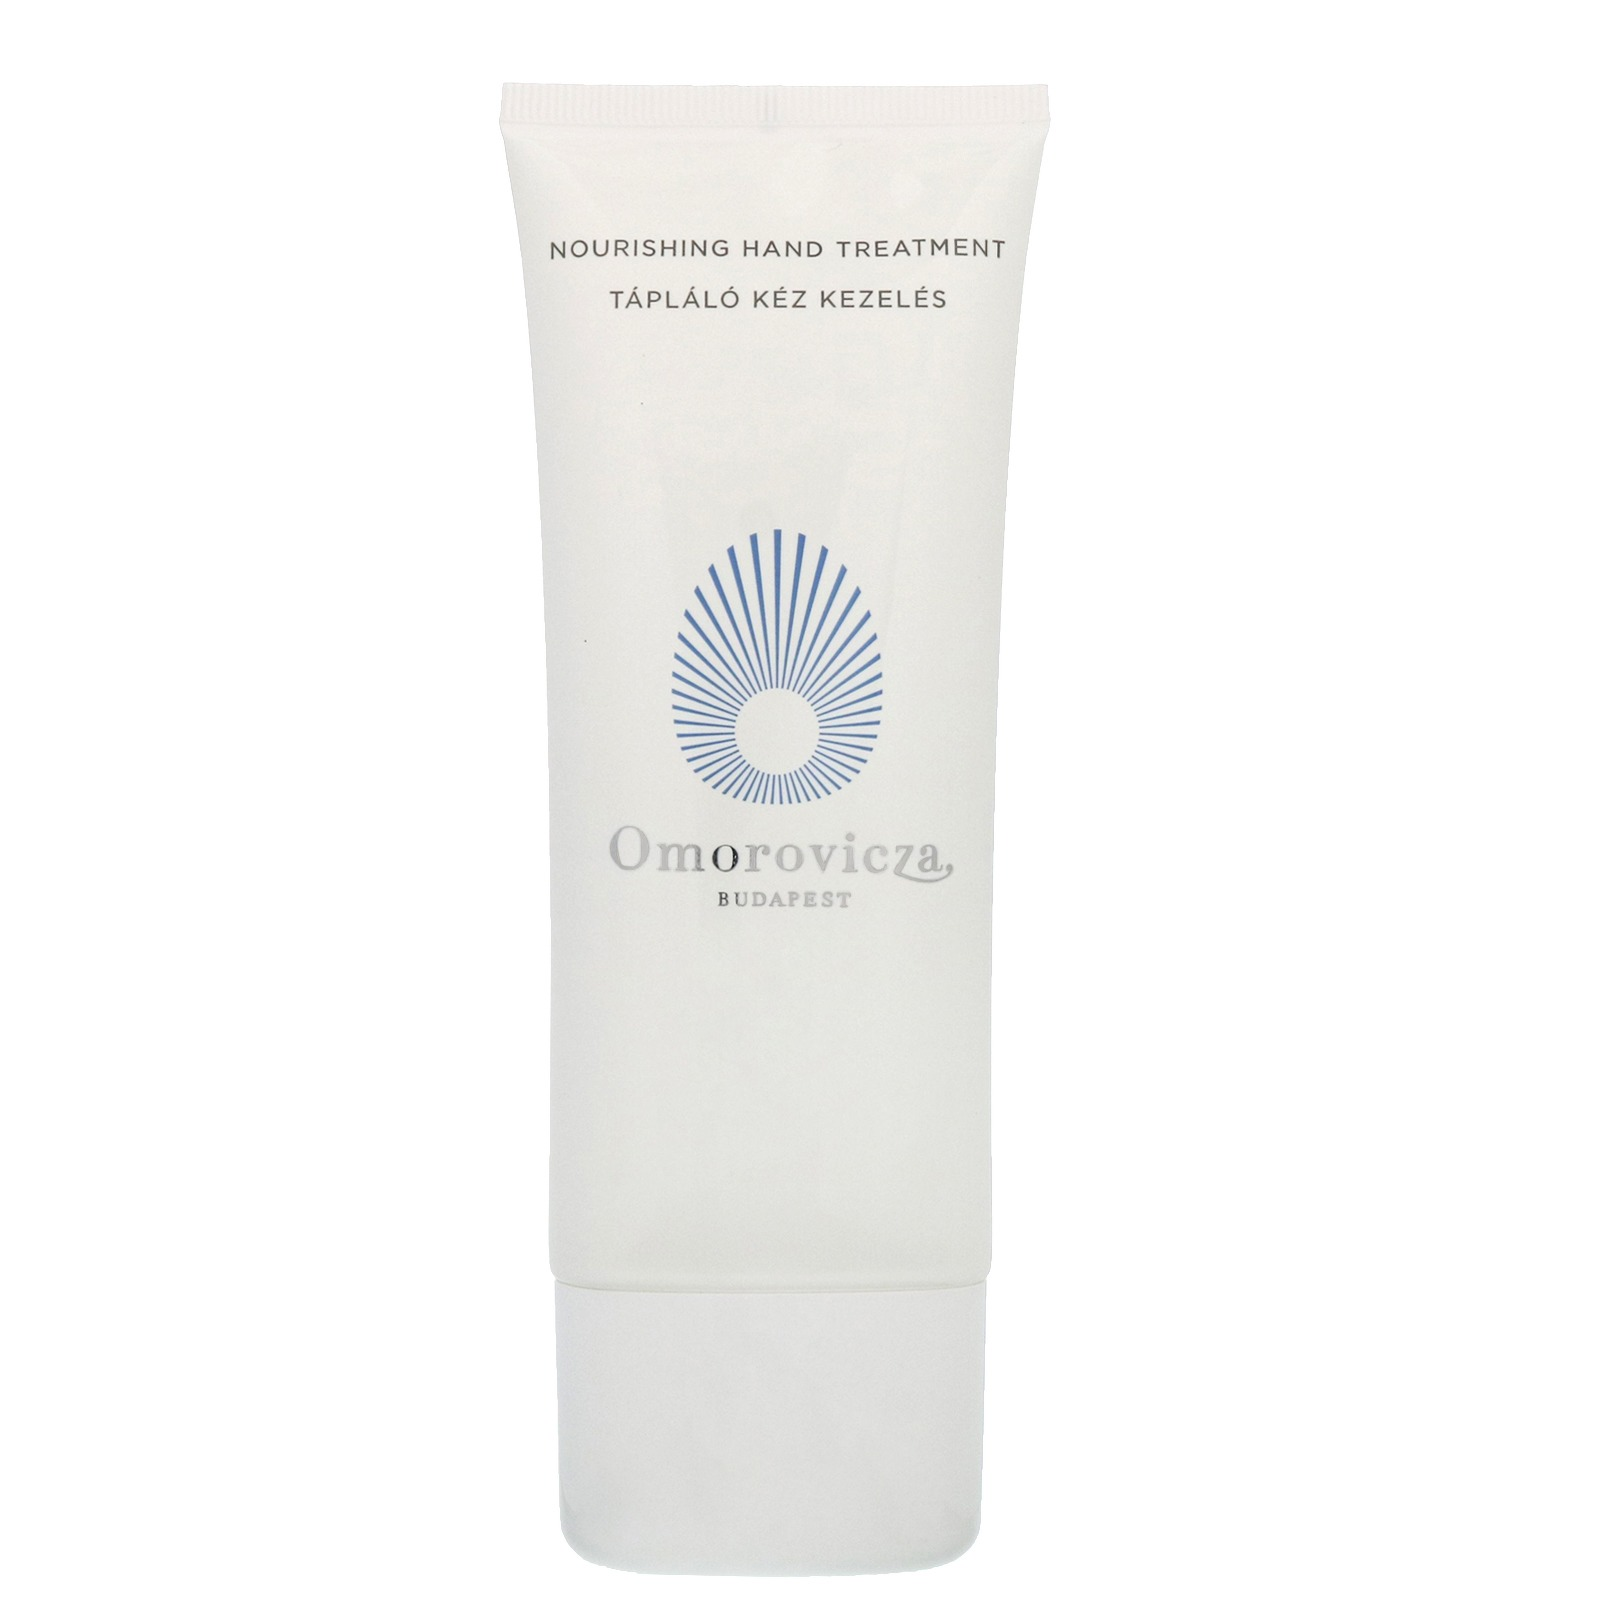 Omorovicza Budapest Hand Cream Nourishing Hand Treatment 100ml